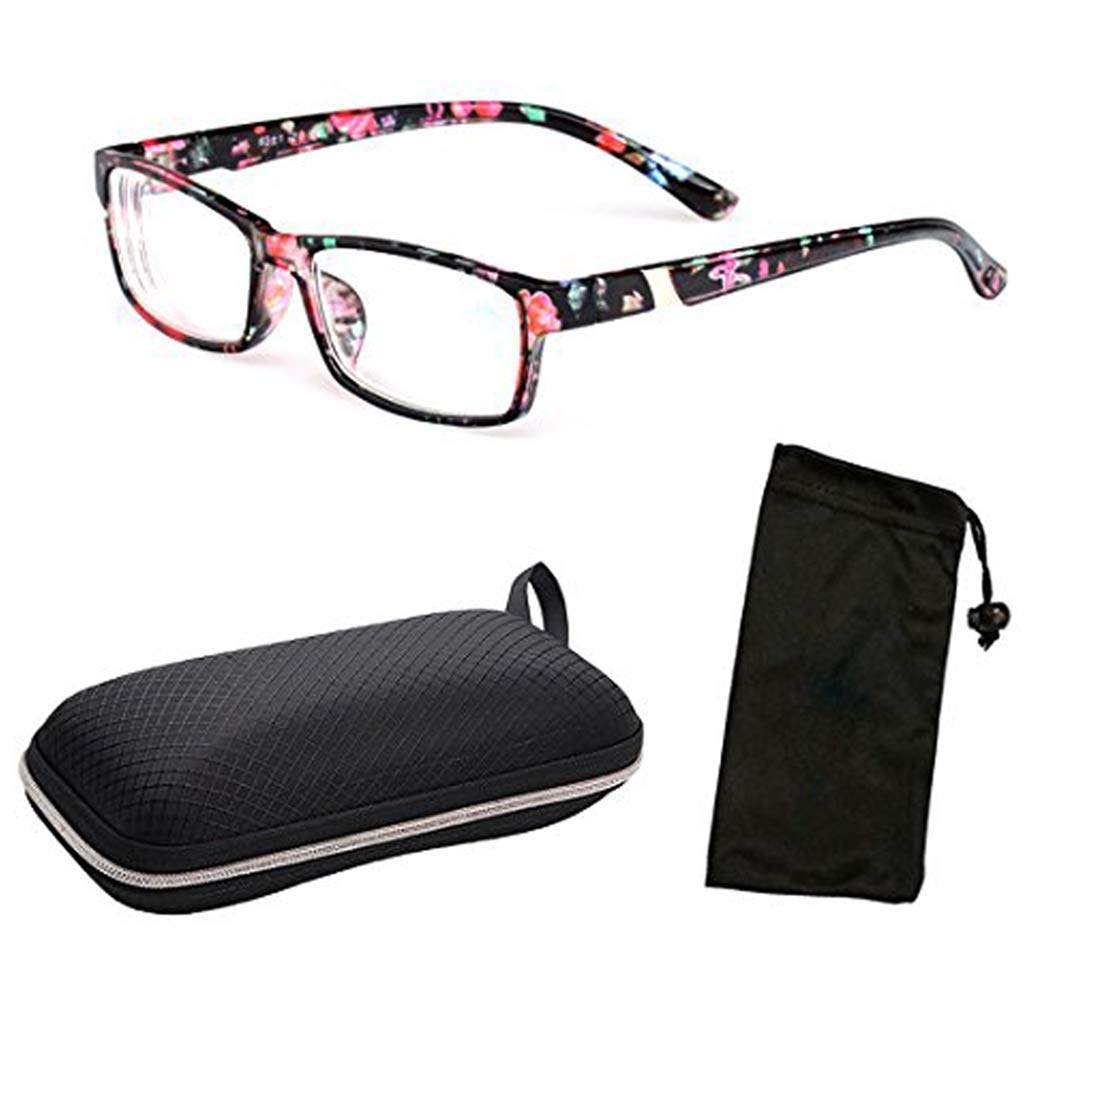 d9d199f1a1 Nearsighted Shortsighted Myopia Driving Glasses for Men   Women Clear  Vision Lenses